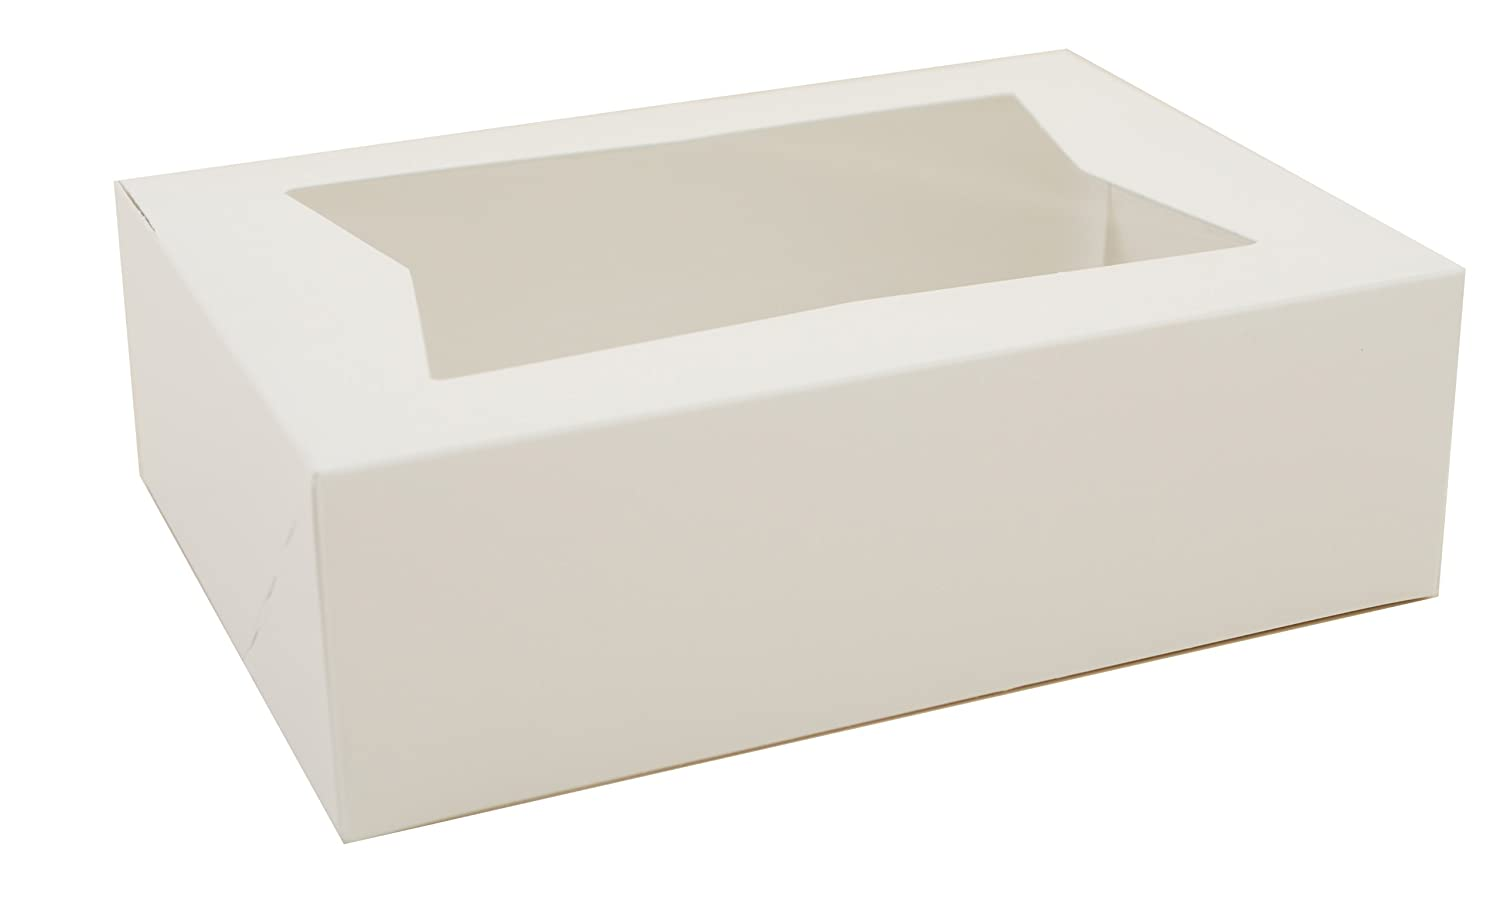 """Southern Champion Tray 24003 Paperboard White Window Bakery Box, 8"""" Length x 5-3/4"""" Width x 2-1/2"""" Height (Case of 200)"""